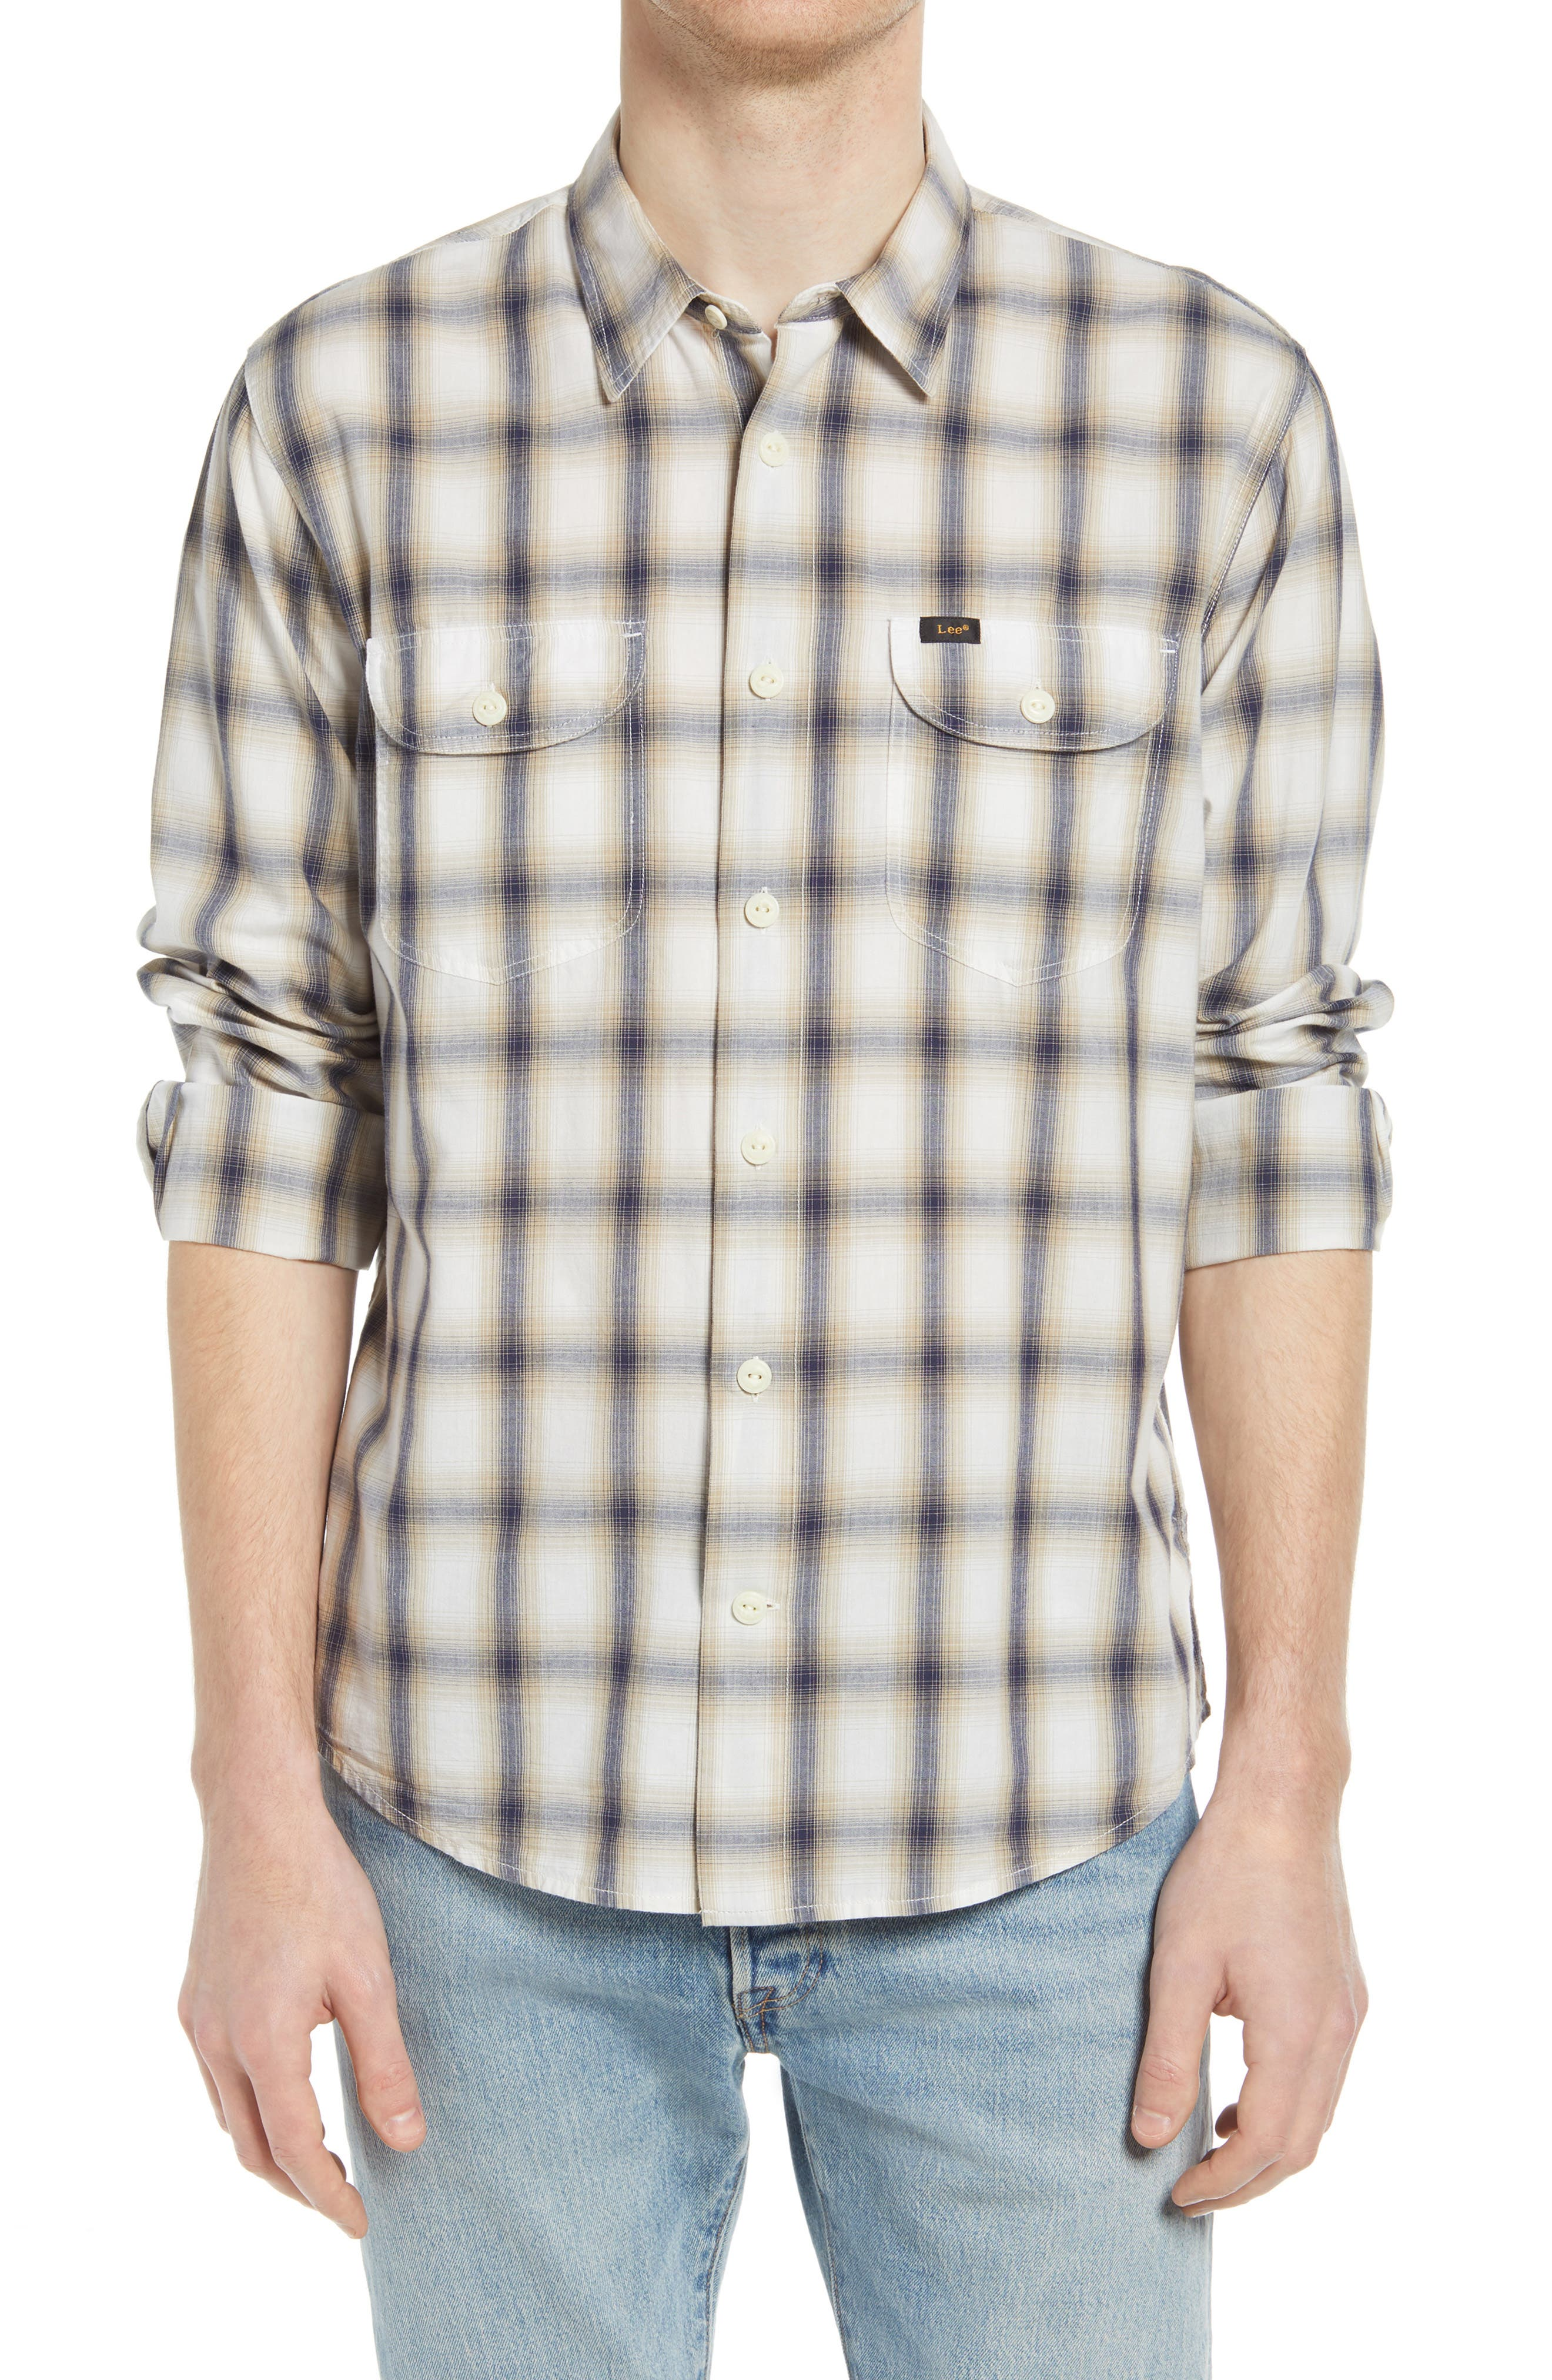 Relaxed Fit Plaid Button-Up Work Shirt